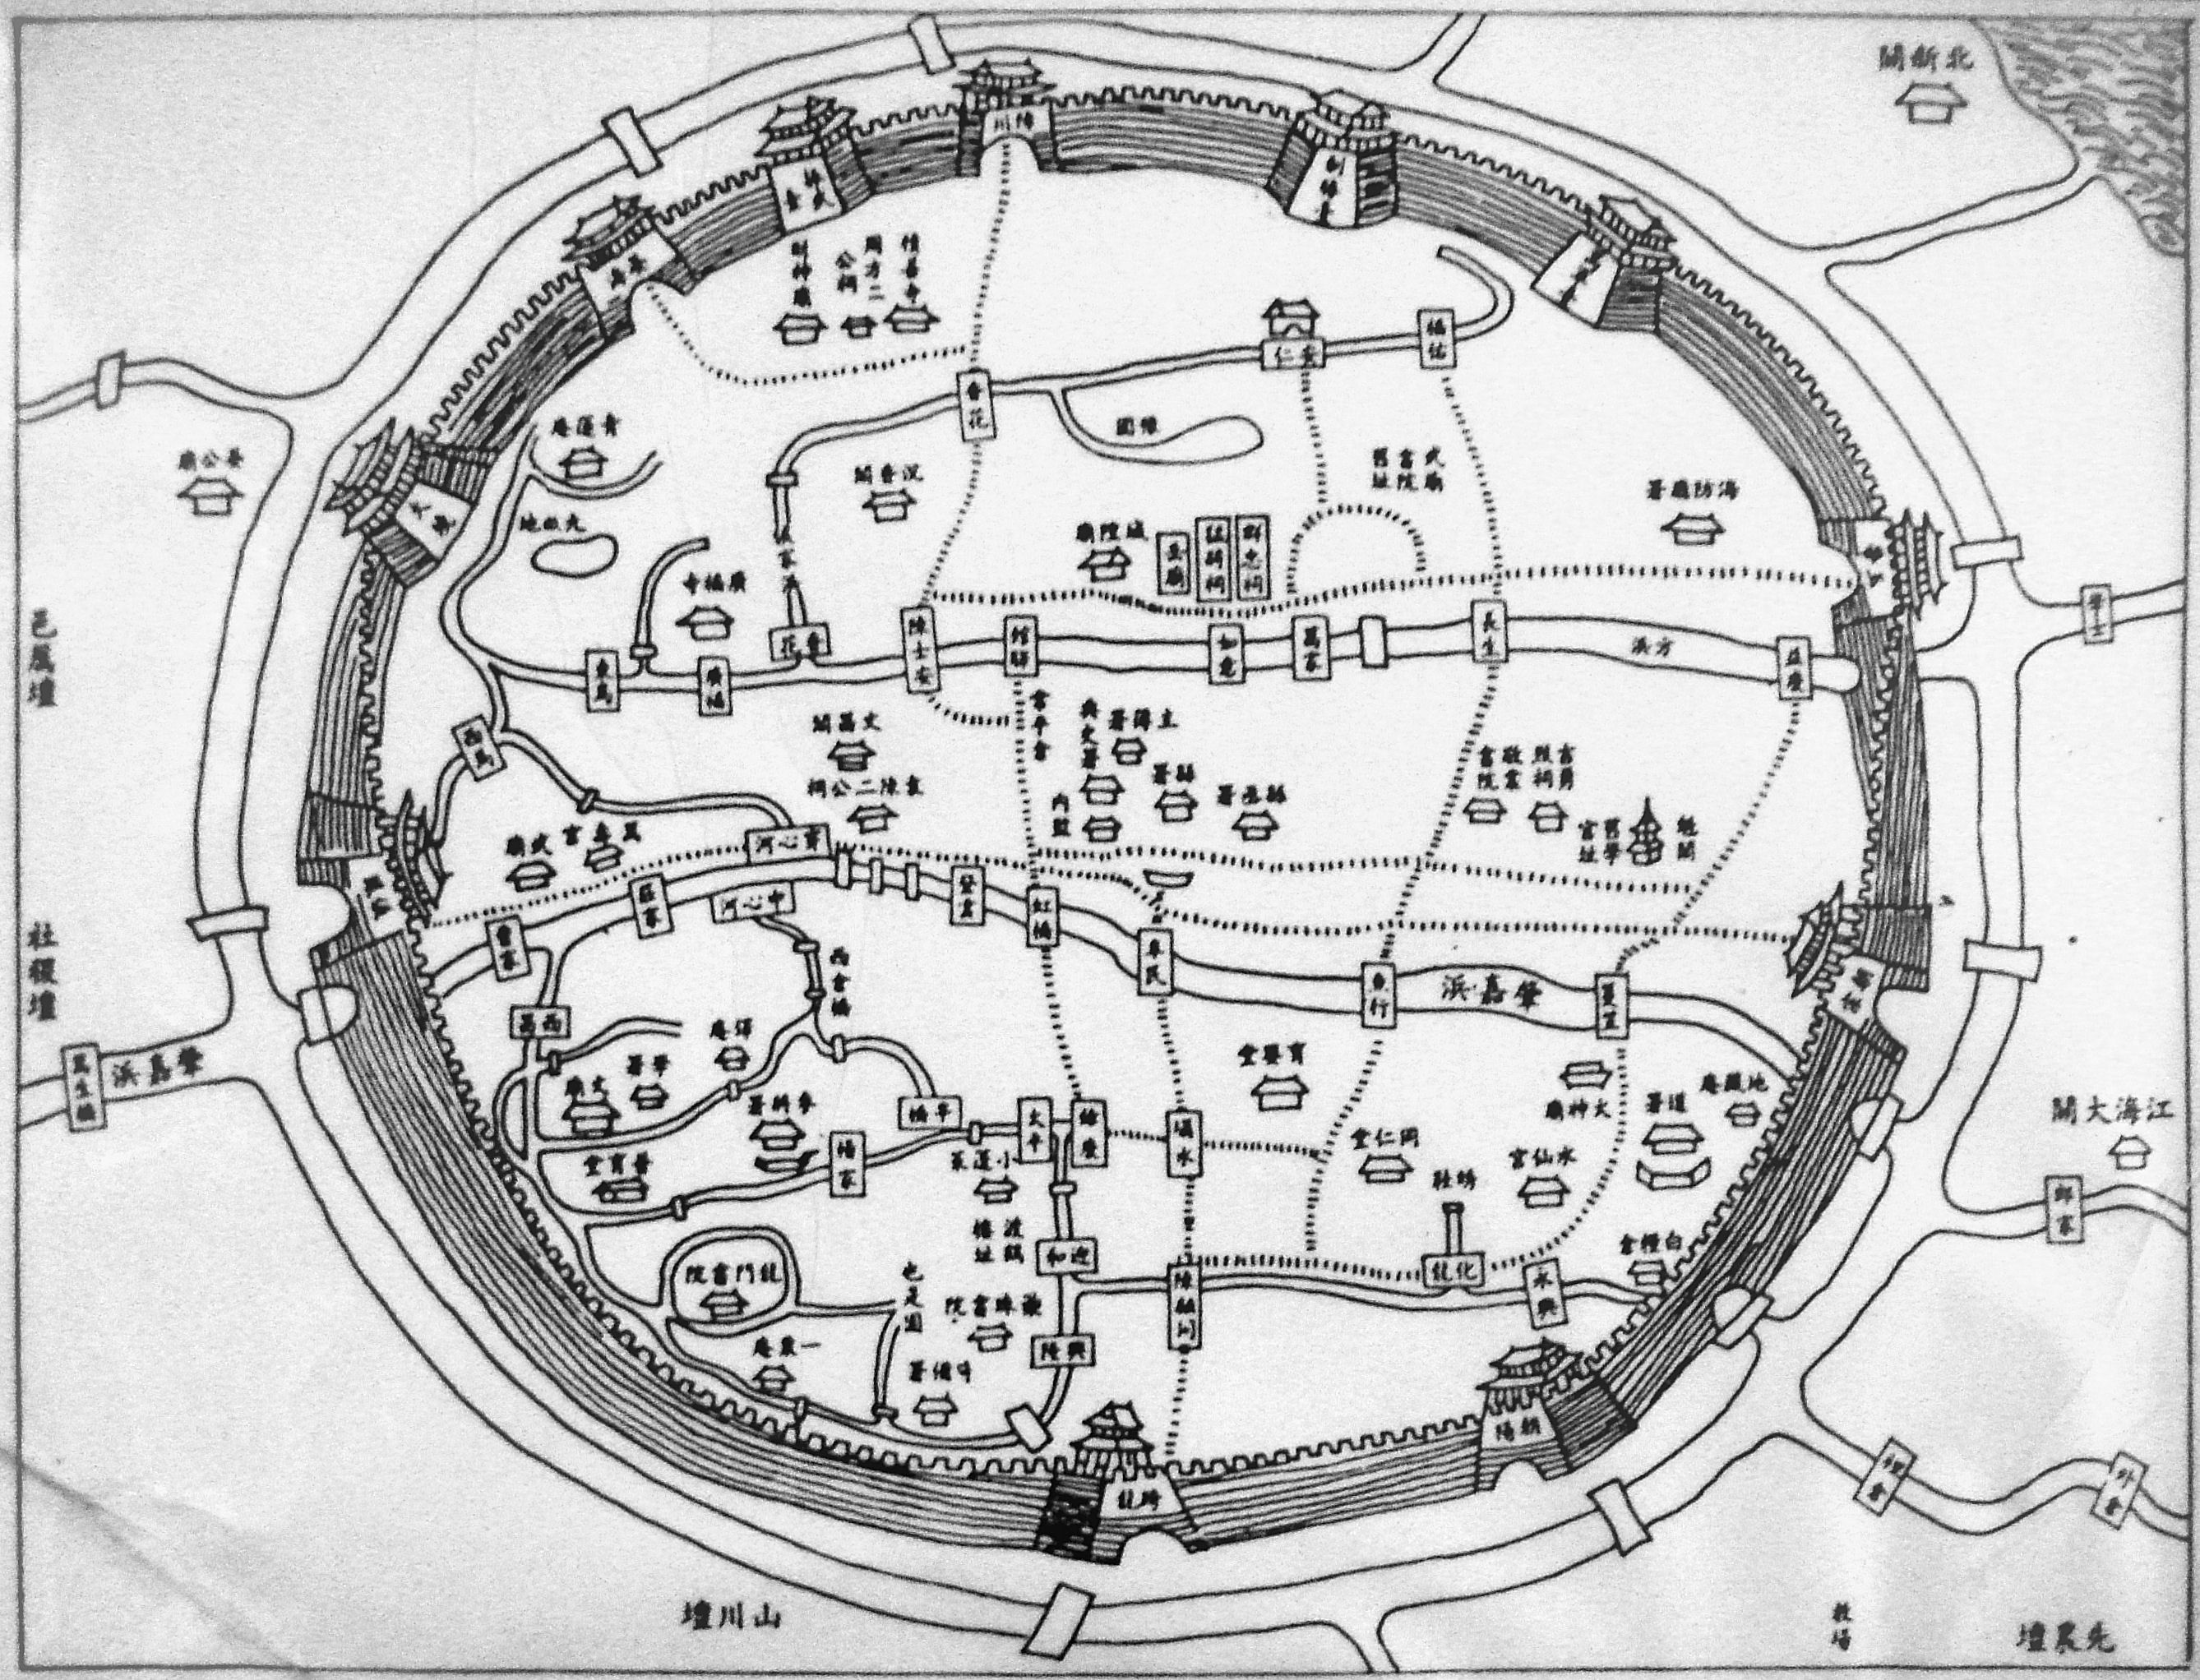 Map of the Old City of Shanghai